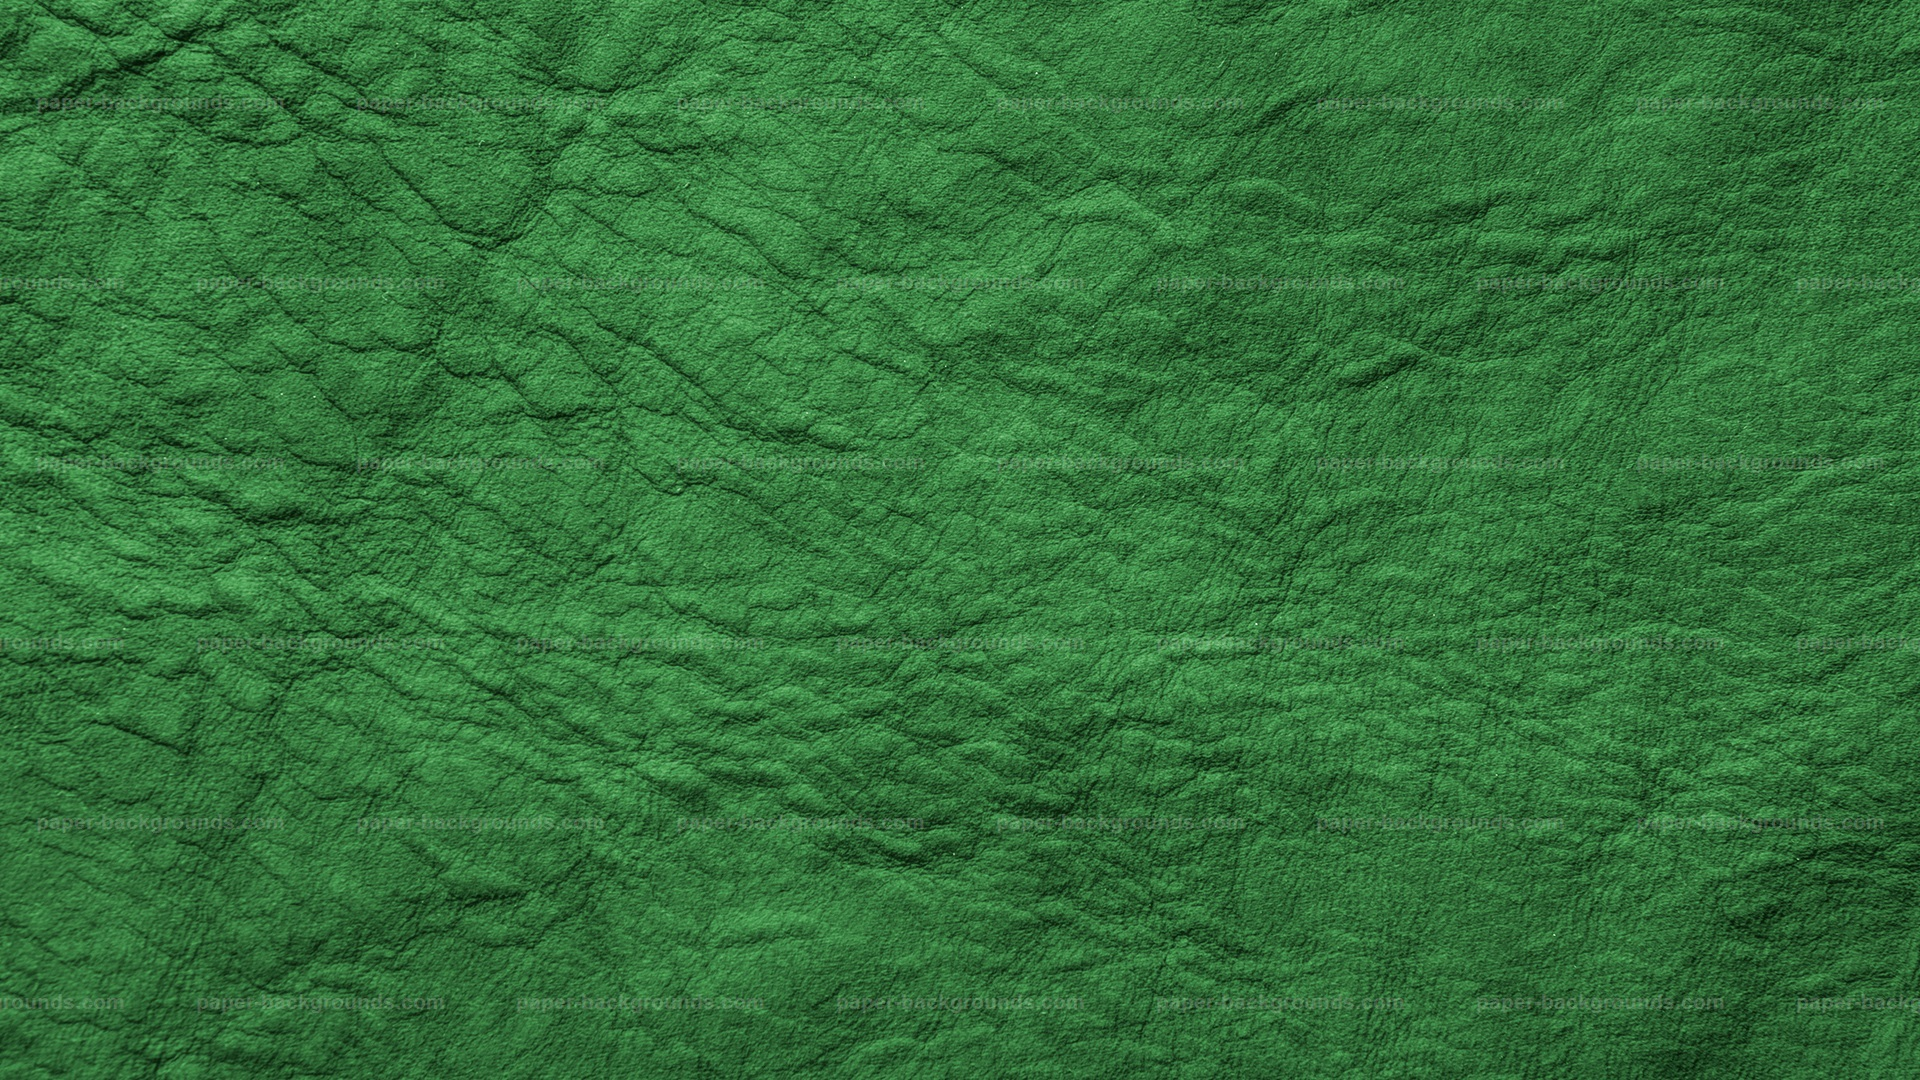 Paper Backgrounds | Green Wrinkled Soft Leather Texture